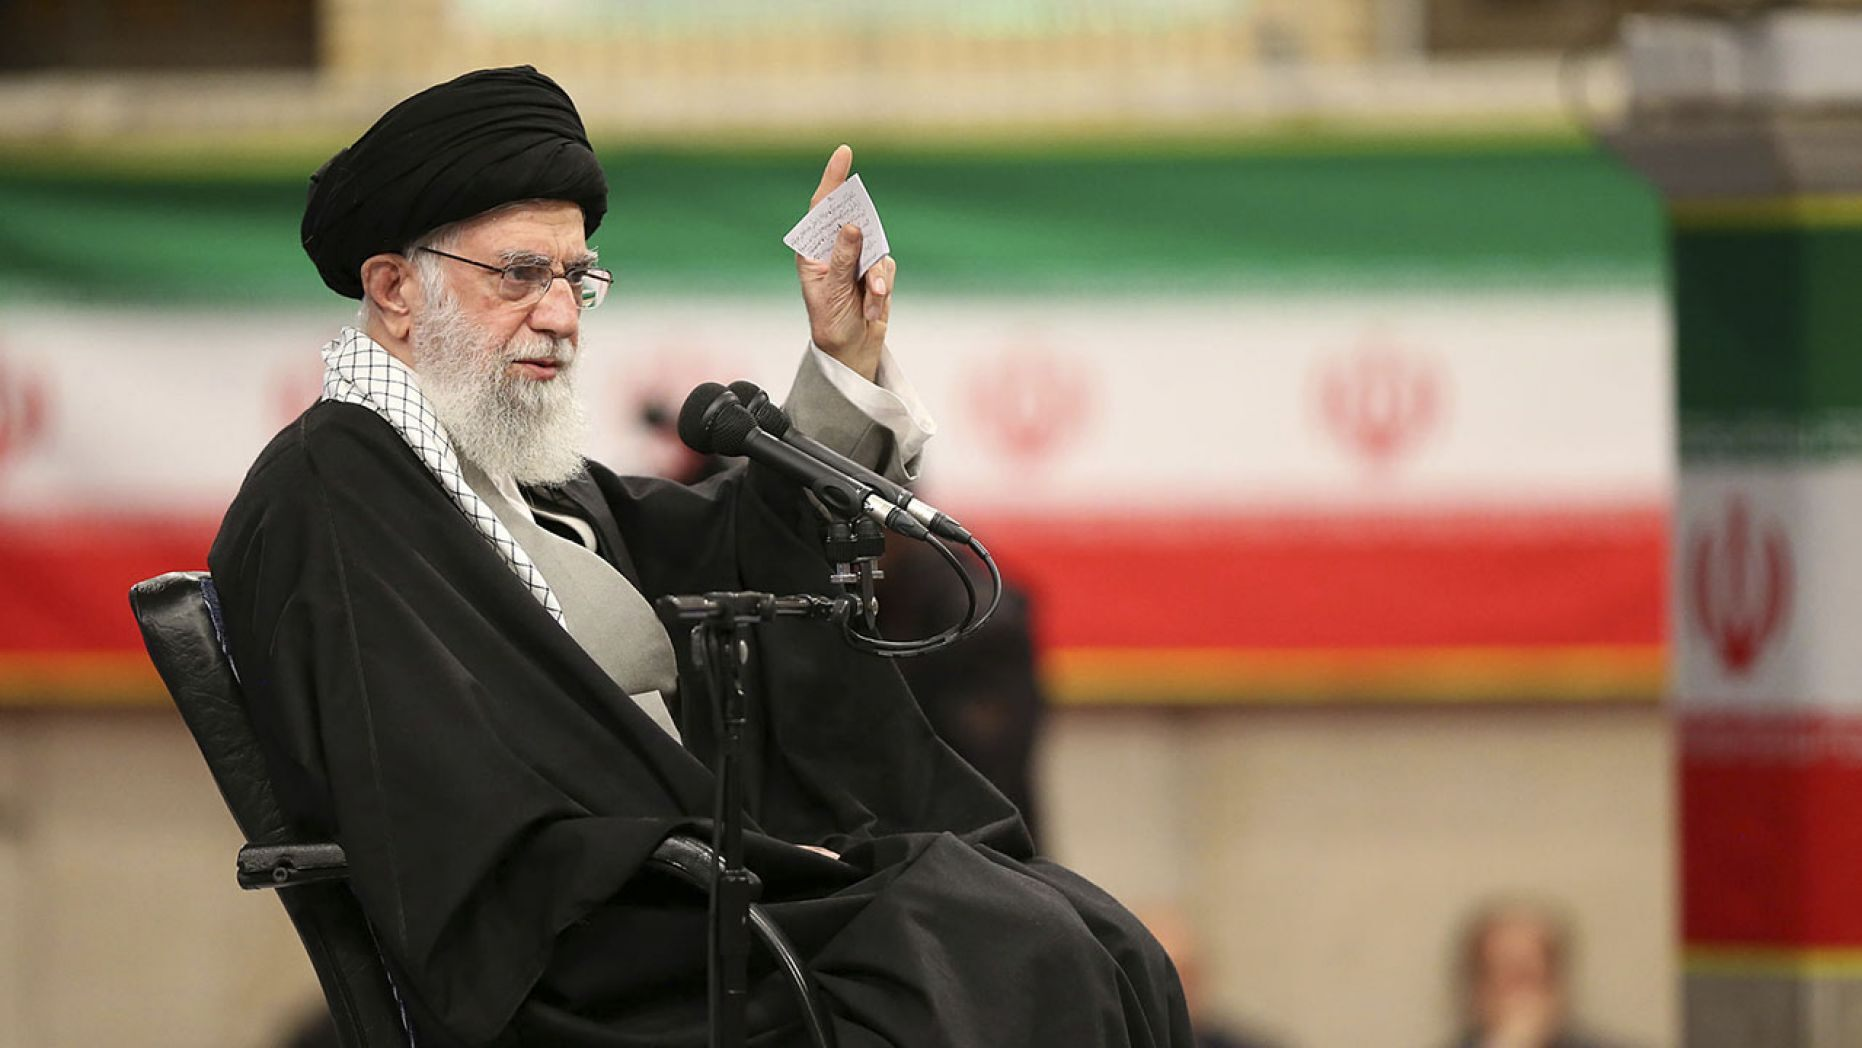 Khamenei said Wednesday that Trump's Mideast peace plan will not outlive the president.